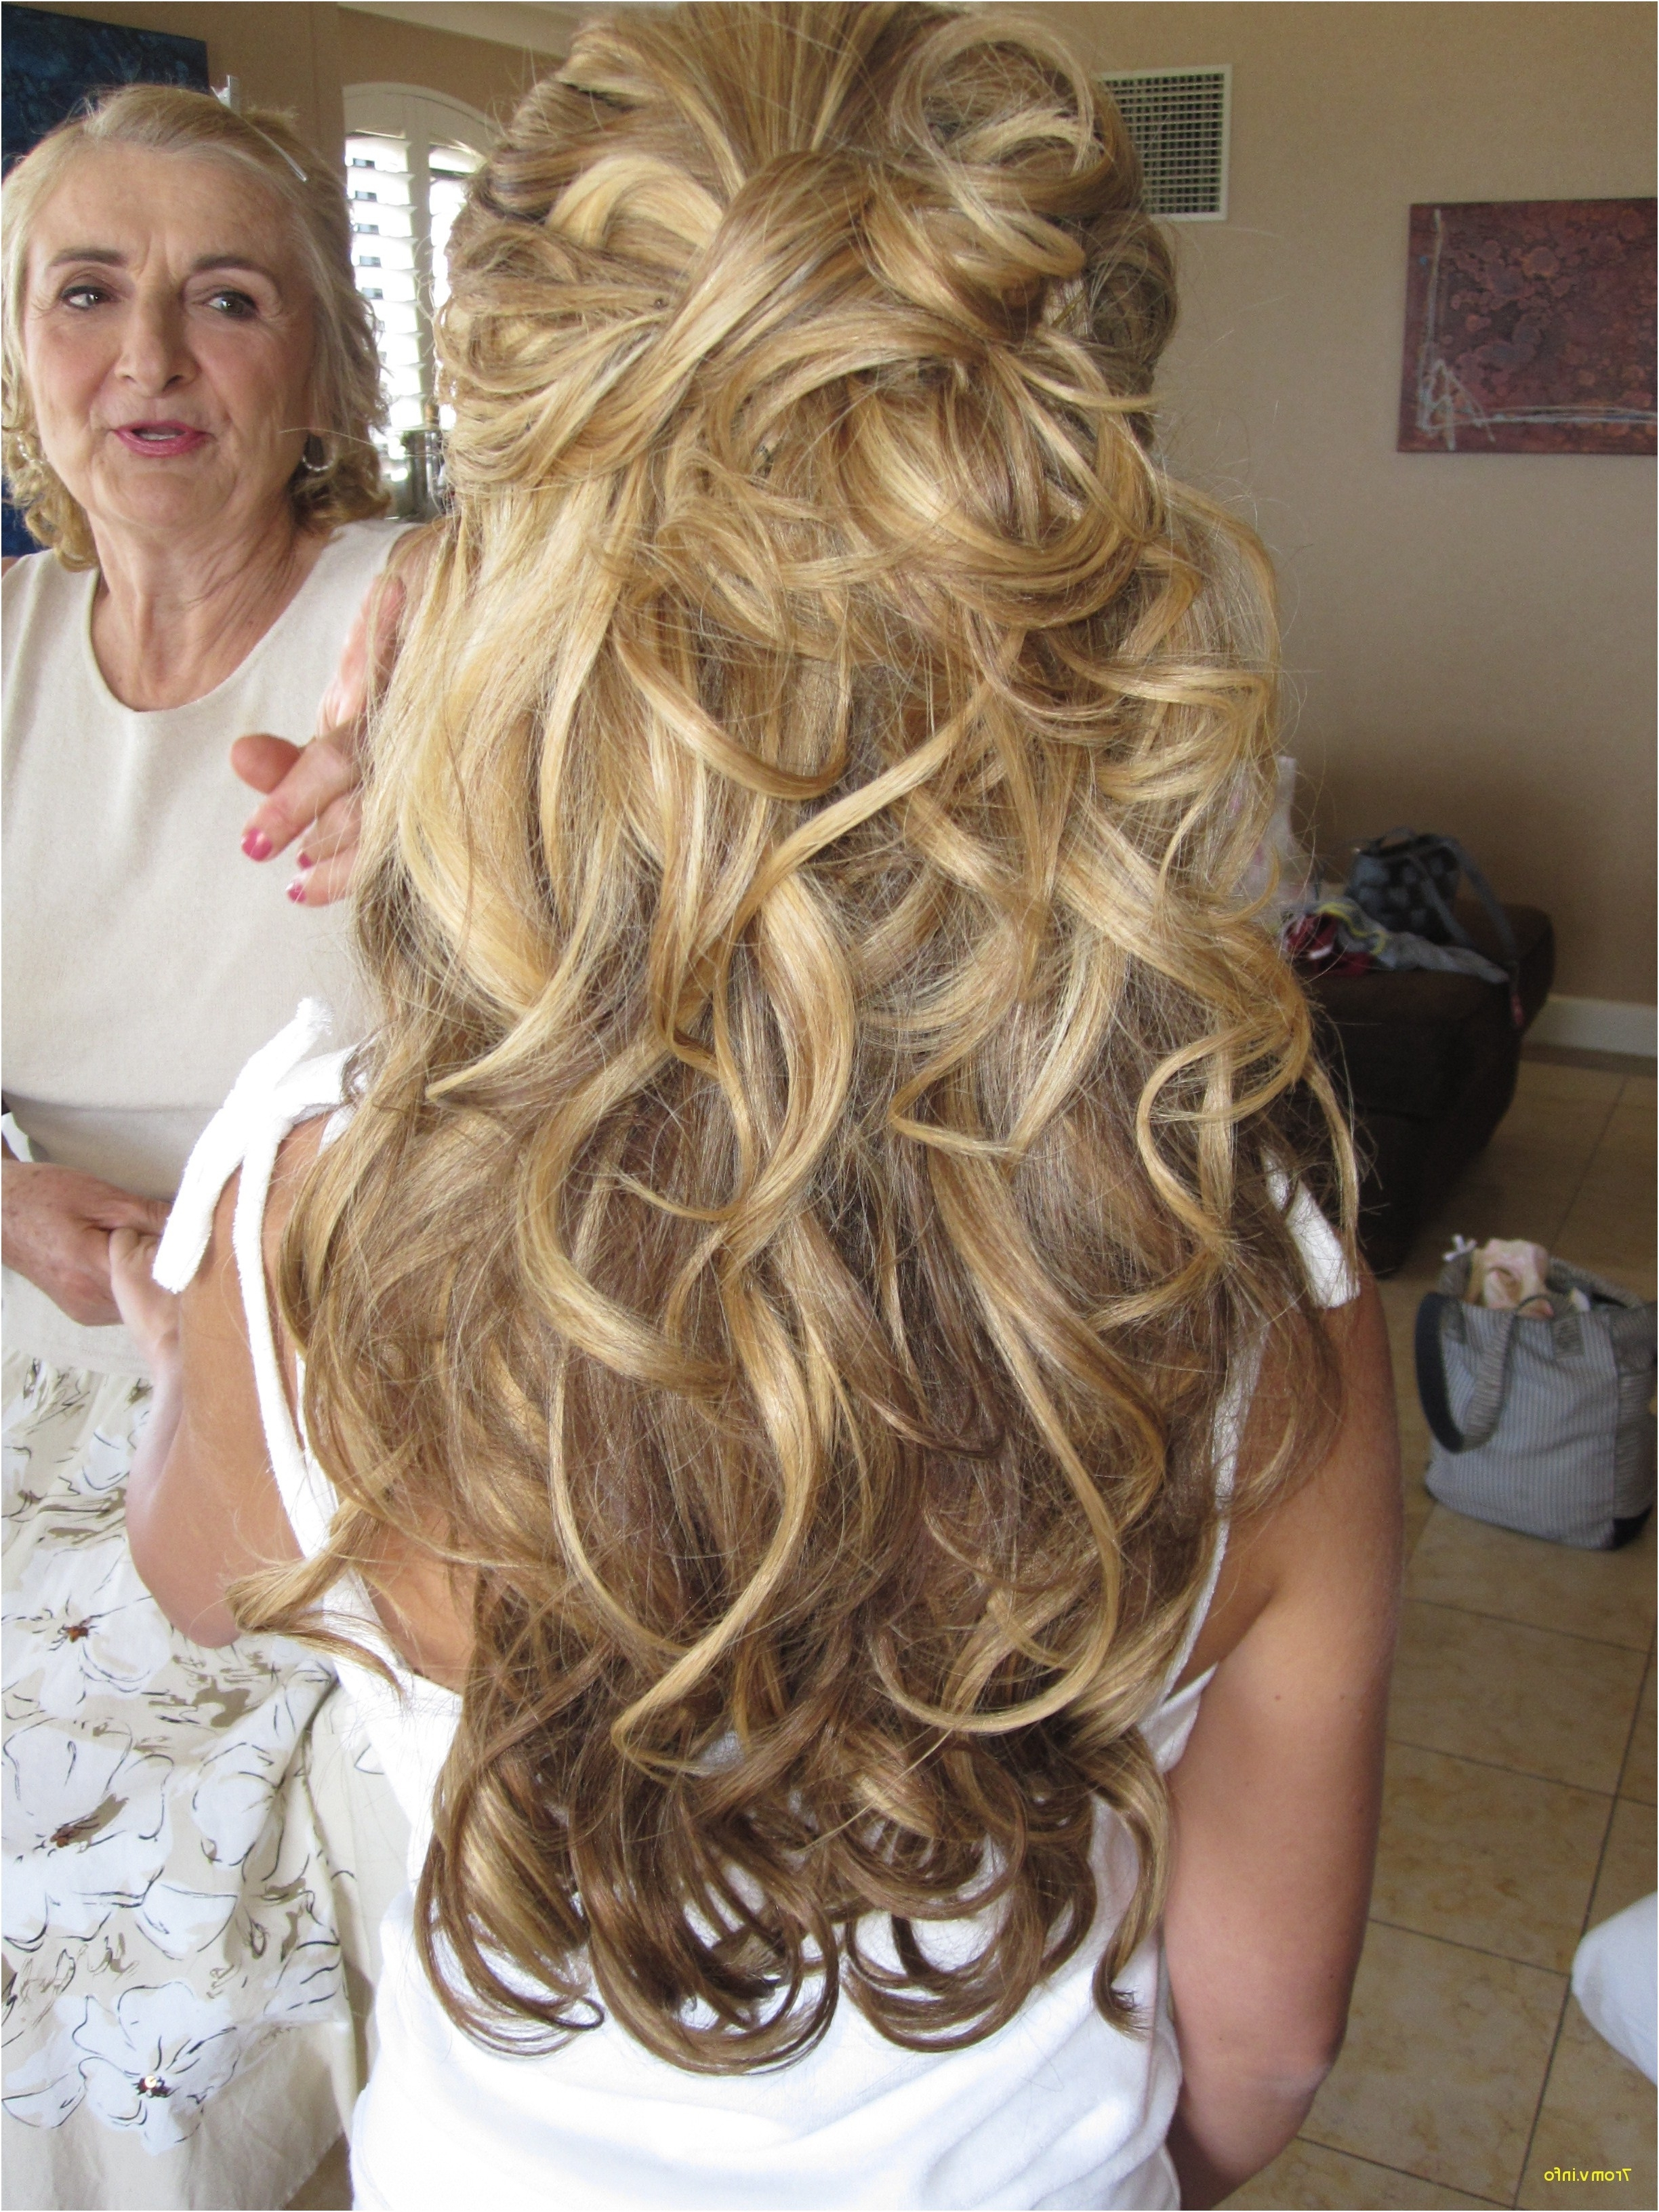 Wedding Hairstyles For Long Hair Off To The Side Beautiful 1 2 Up 1 Pertaining To Most Popular Off To The Side Wedding Hairstyles (View 14 of 15)